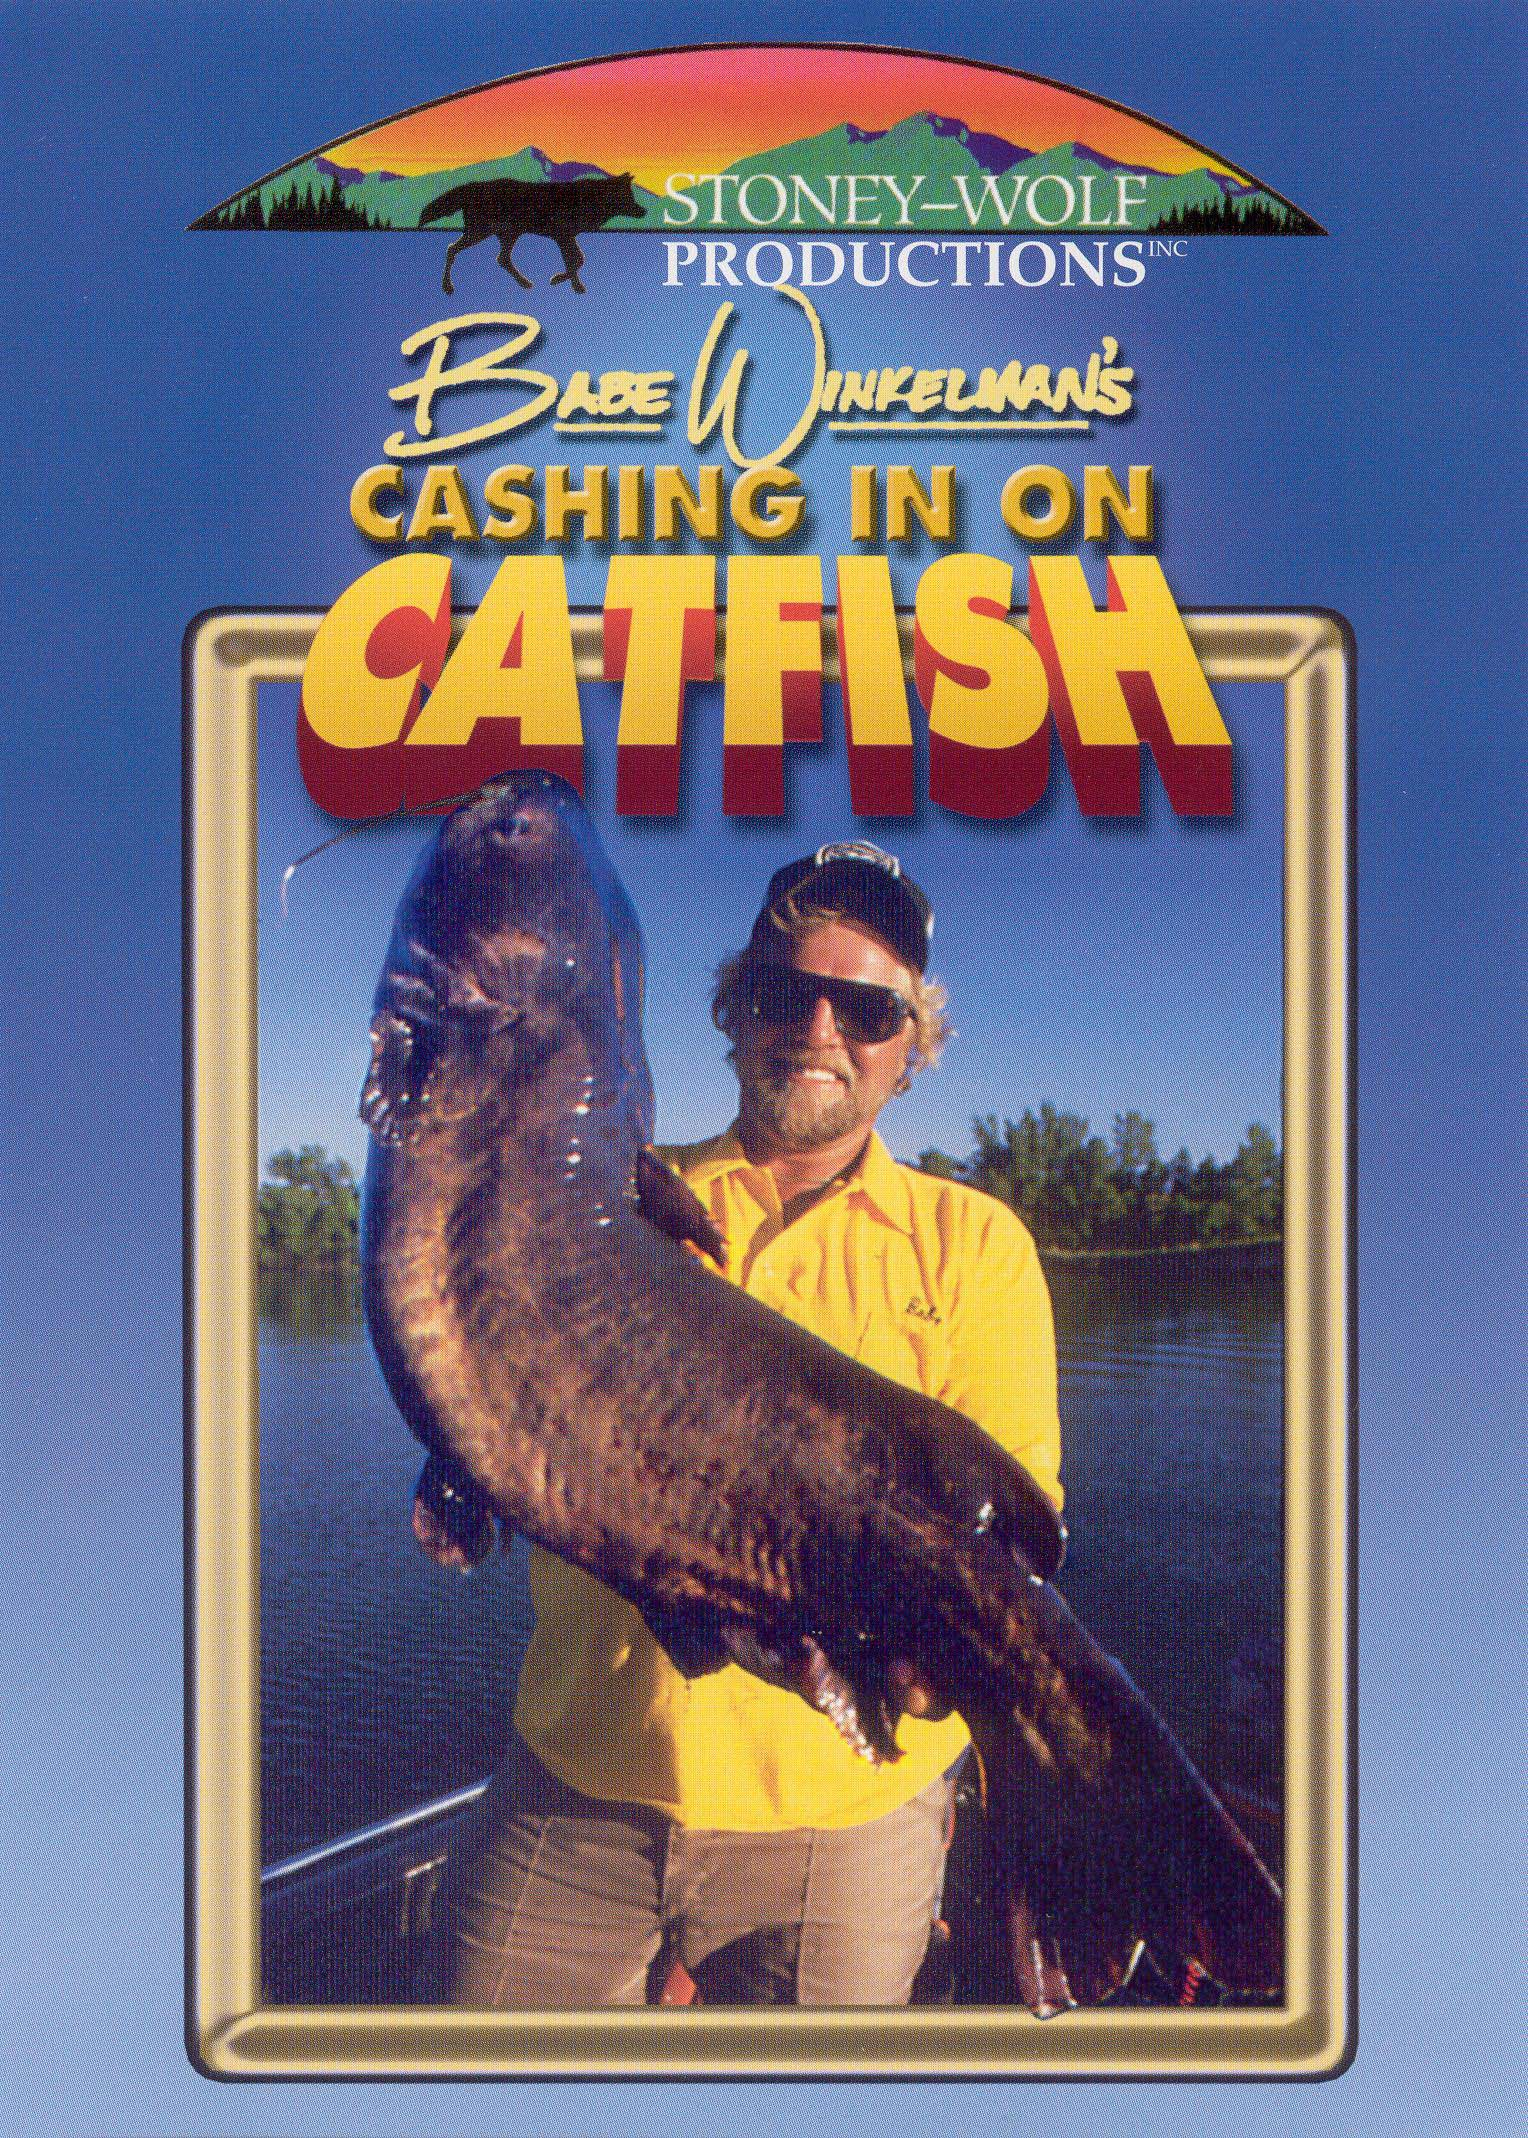 Babe Winkelman: Cashing in on Catfish